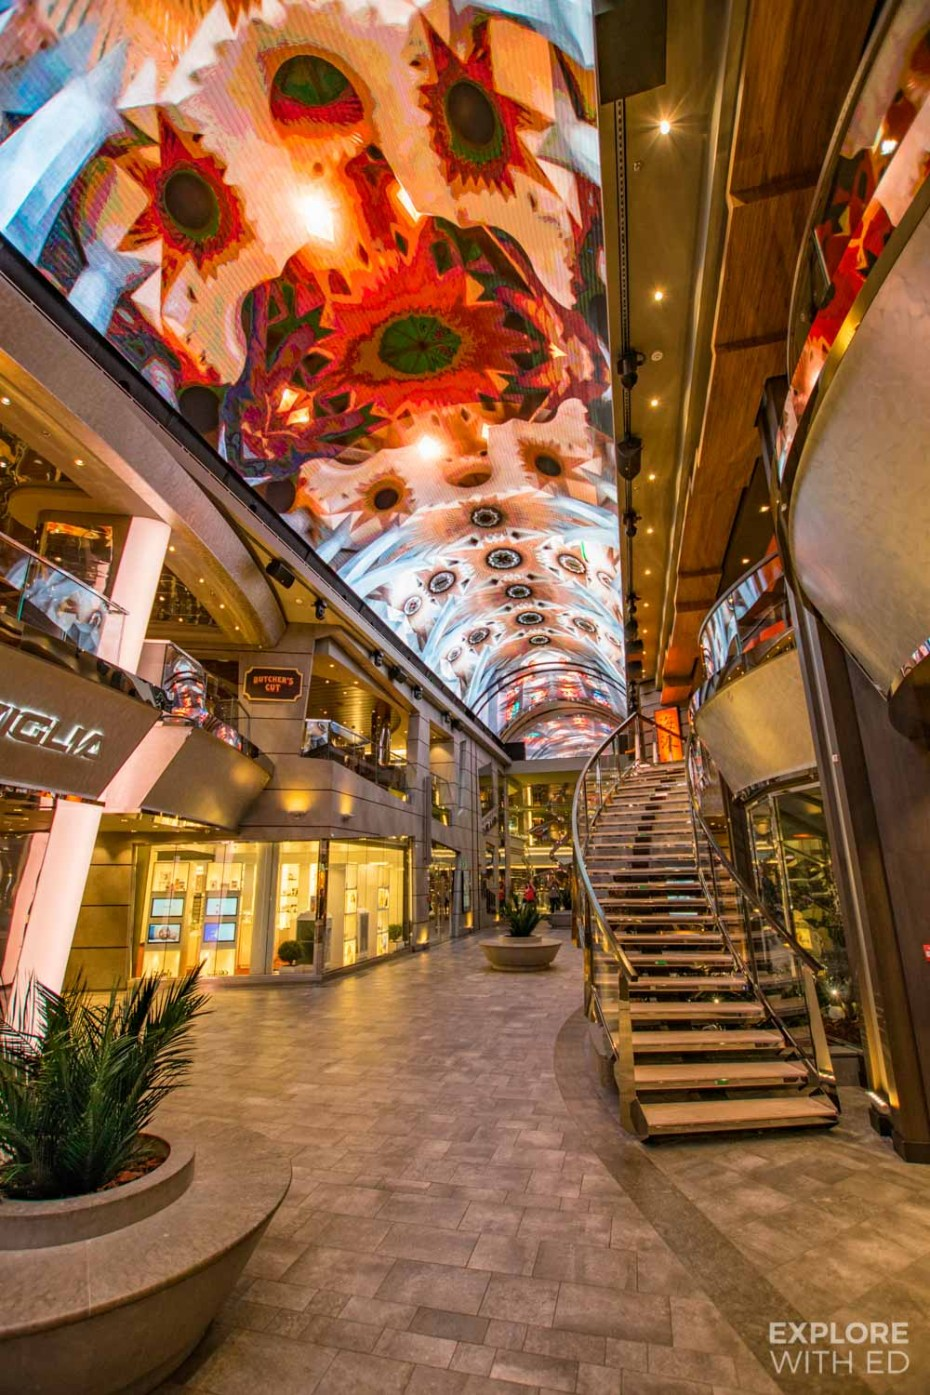 LED ceiling and shopping promenade on MSC Meraviglia